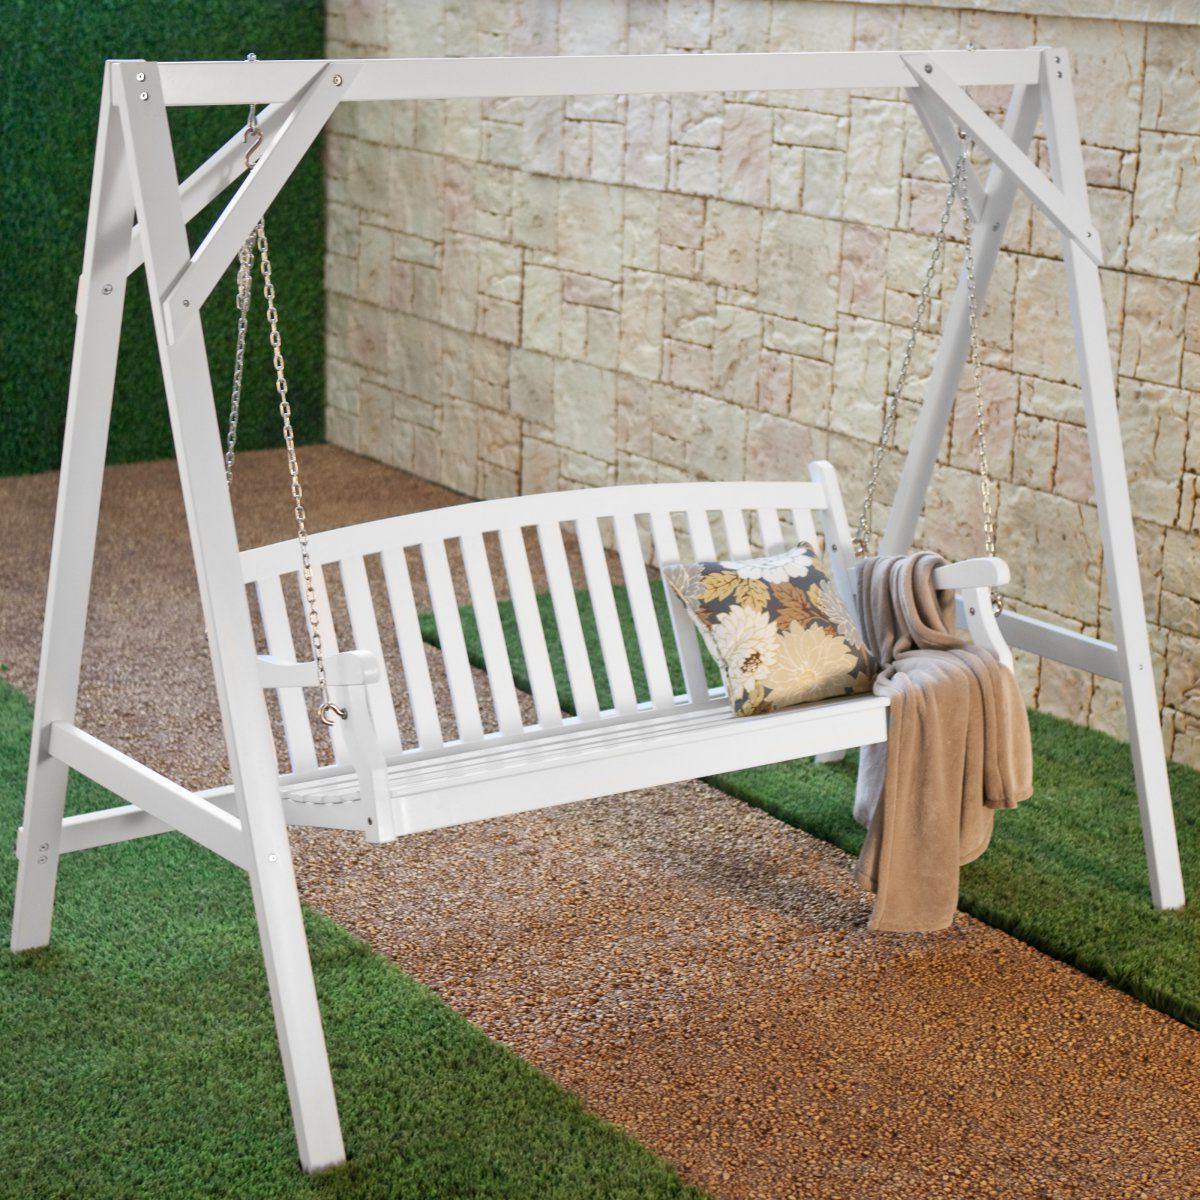 Hardwood Hanging Porch Swings With Stand Within 2019 Wood Porch Swing Stand – White (View 6 of 25)